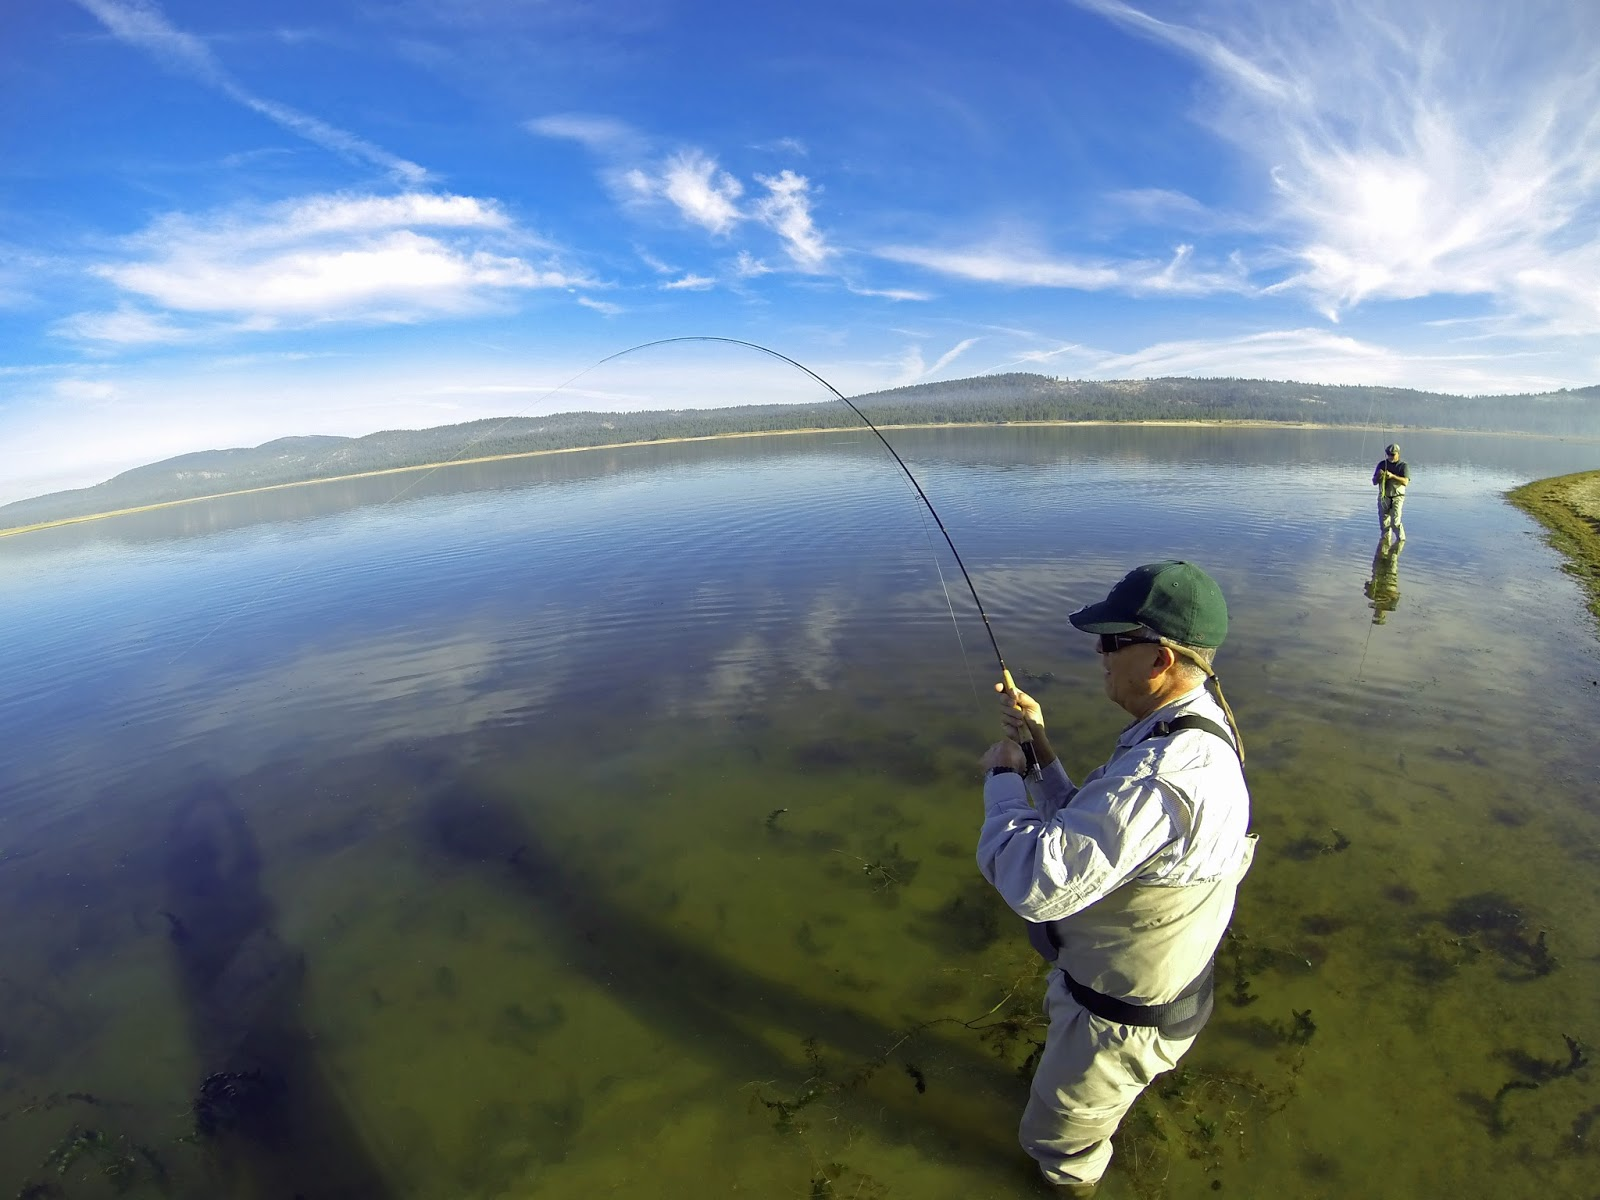 Jon baiocchi fly fishing news lake davis fishing report for Jon b fishing